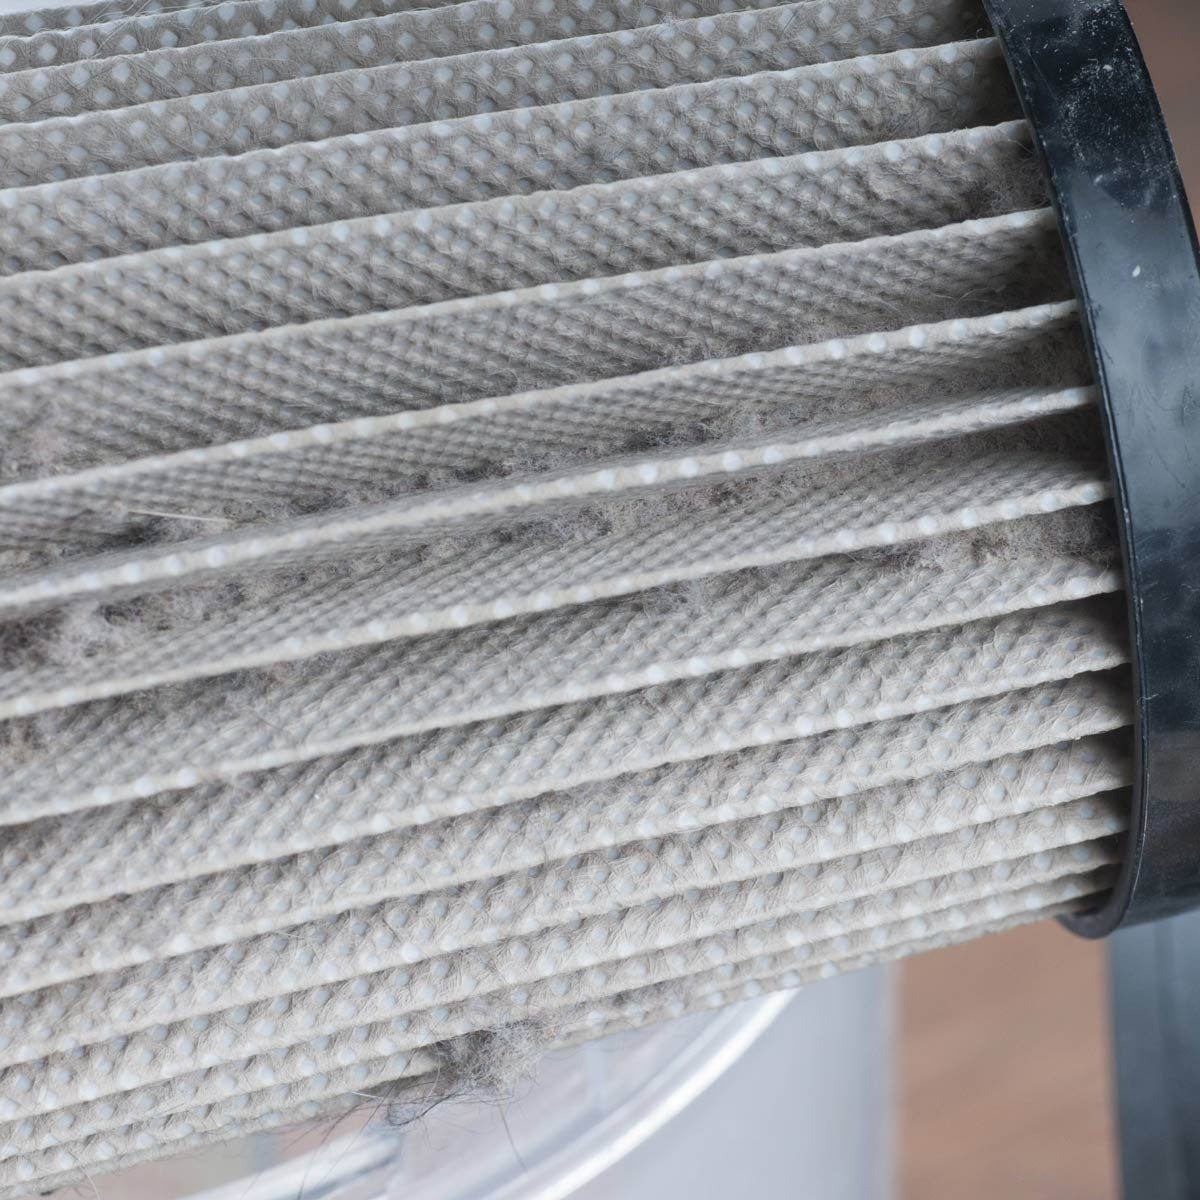 Dirty filter cyclonic vacuum cleaner. HEPA filter